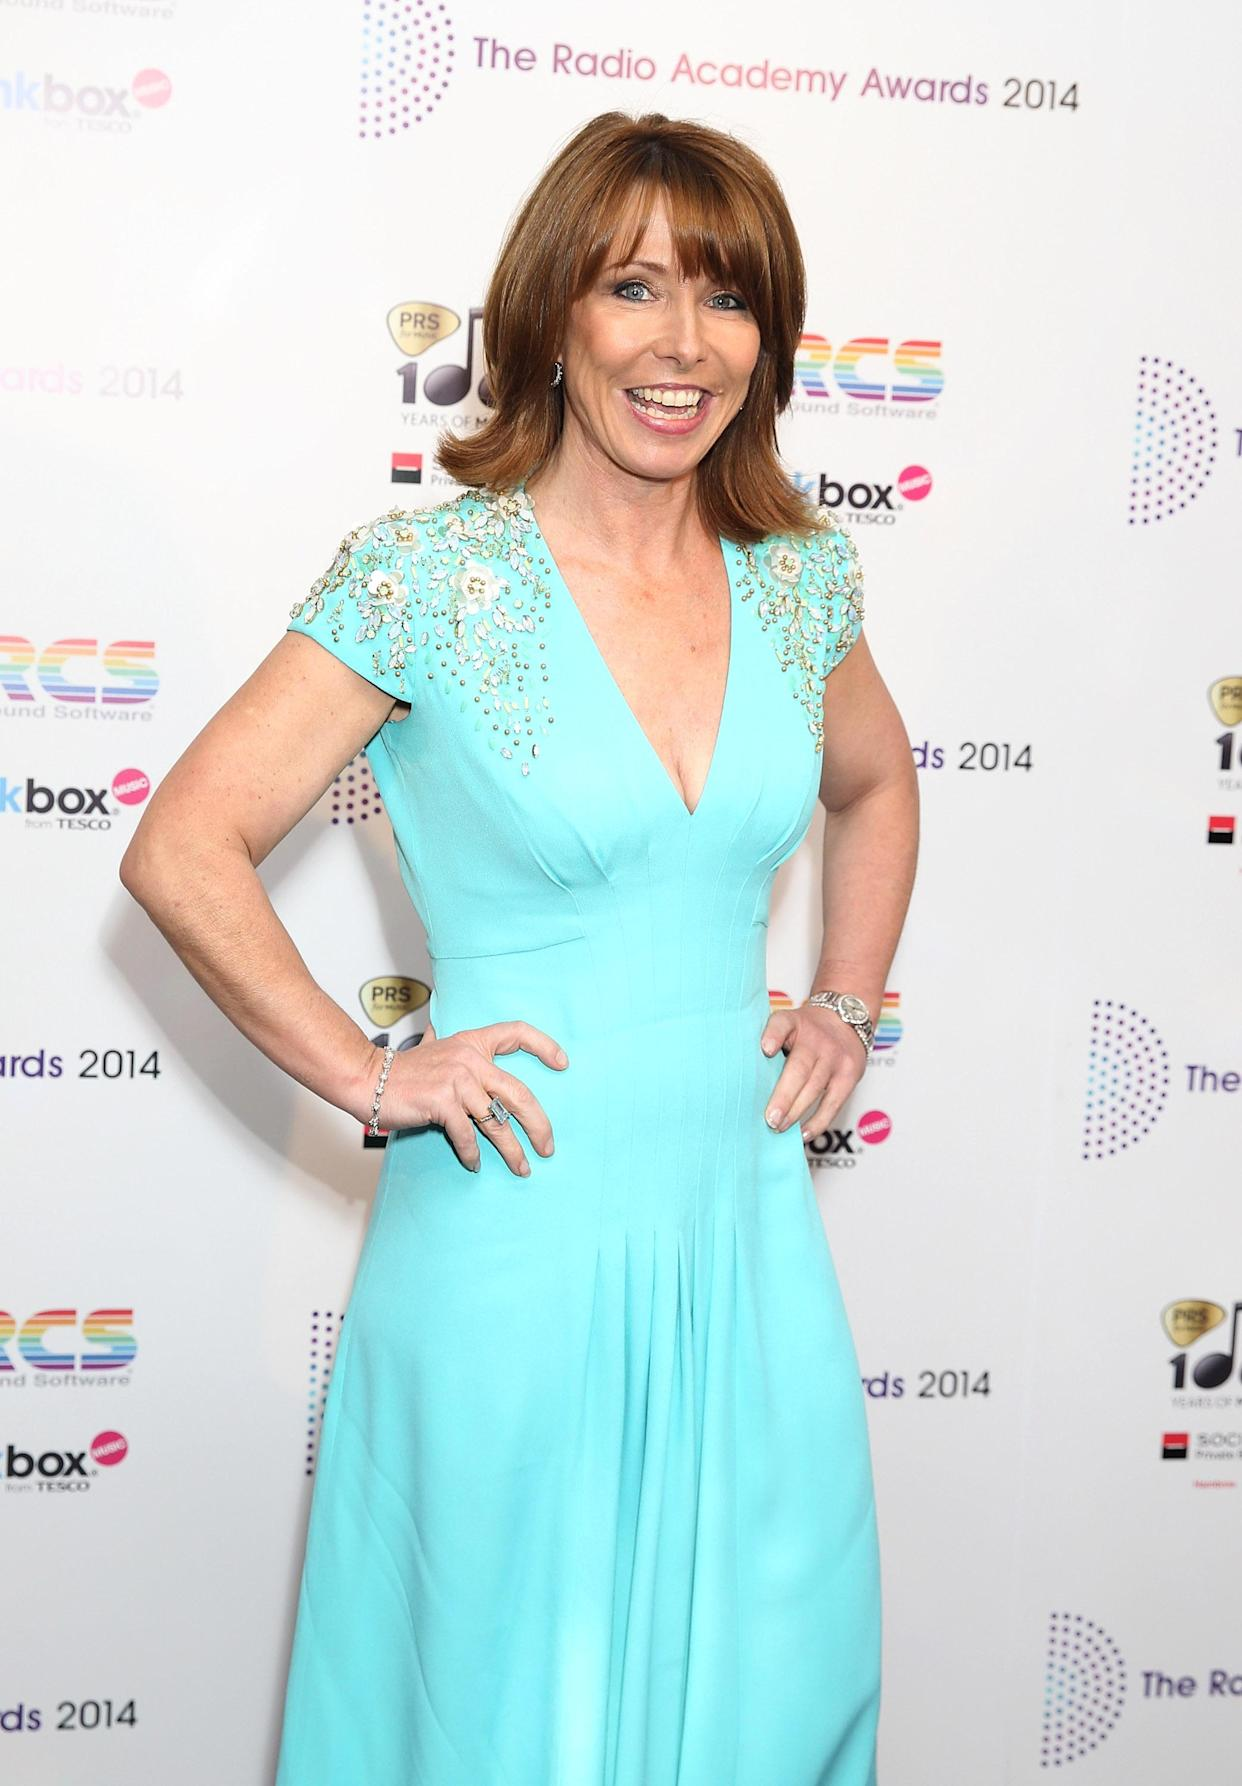 Kay Burley attends The Radio Academy Awards at the Grosvenor House Hotel in London.